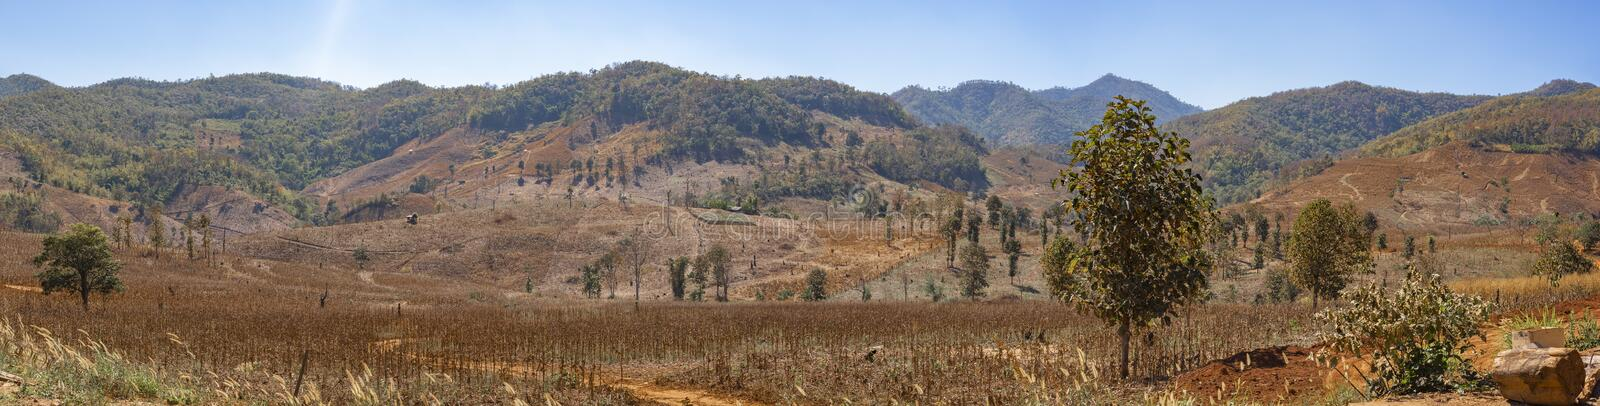 Panorama of the invading forest burned trees, dry cracked soil.Nature and environment Concept. Panorama of the invading  forest burned trees, dry cracked soil royalty free stock photo